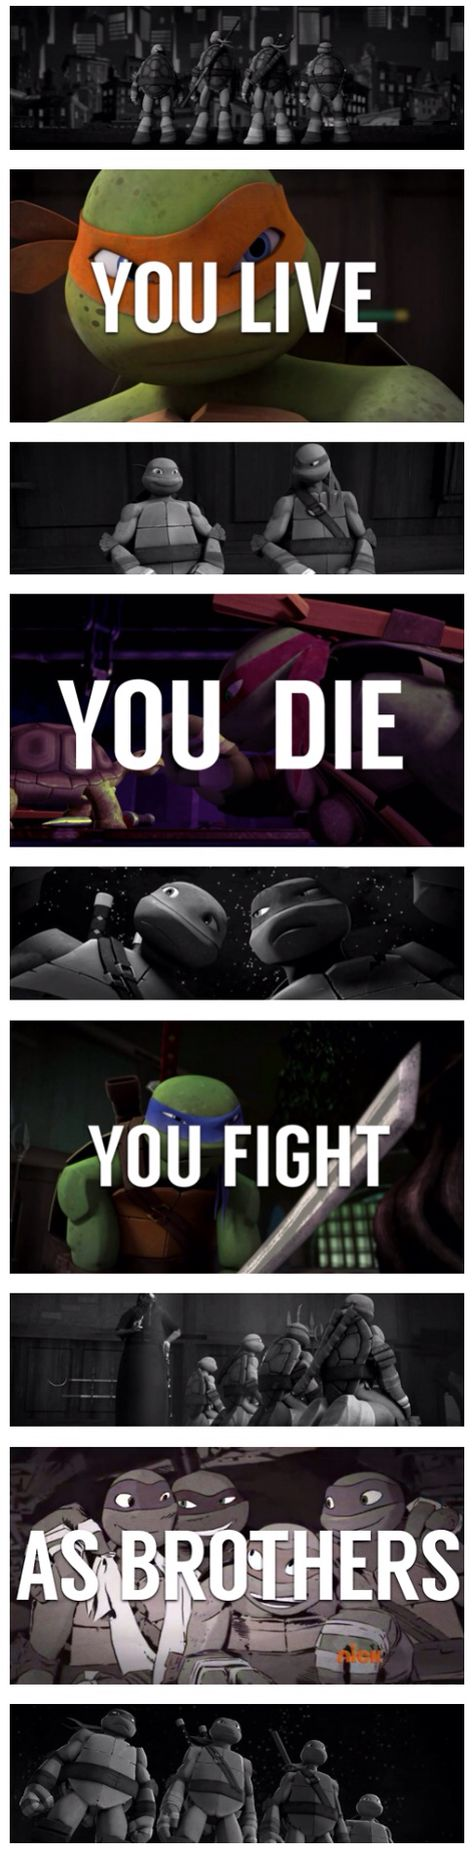 An edit made by me ! #TMNT 2012 + 2014 quote :)